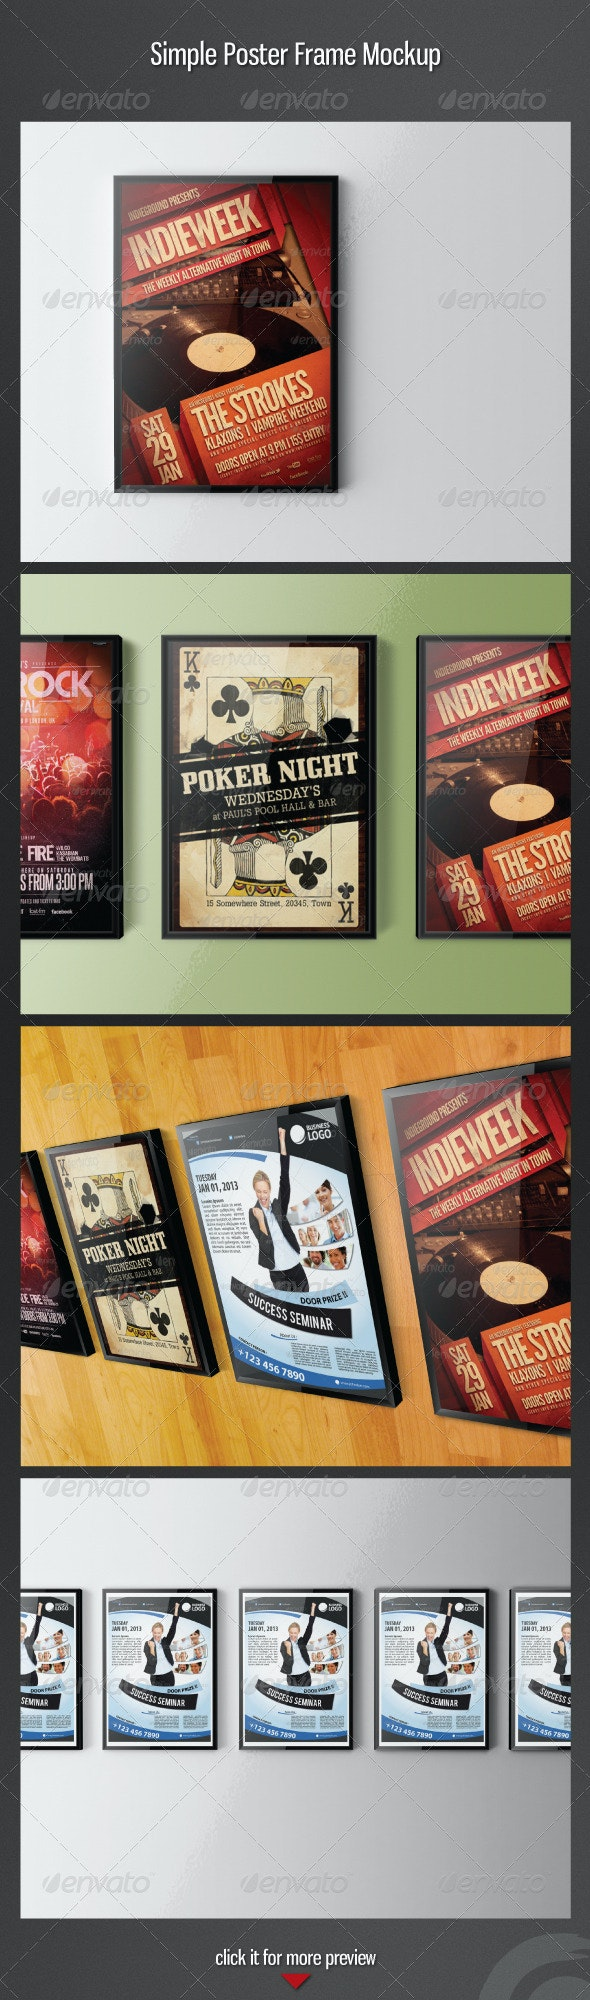 Simple Poster Frame Mockup - Posters Print